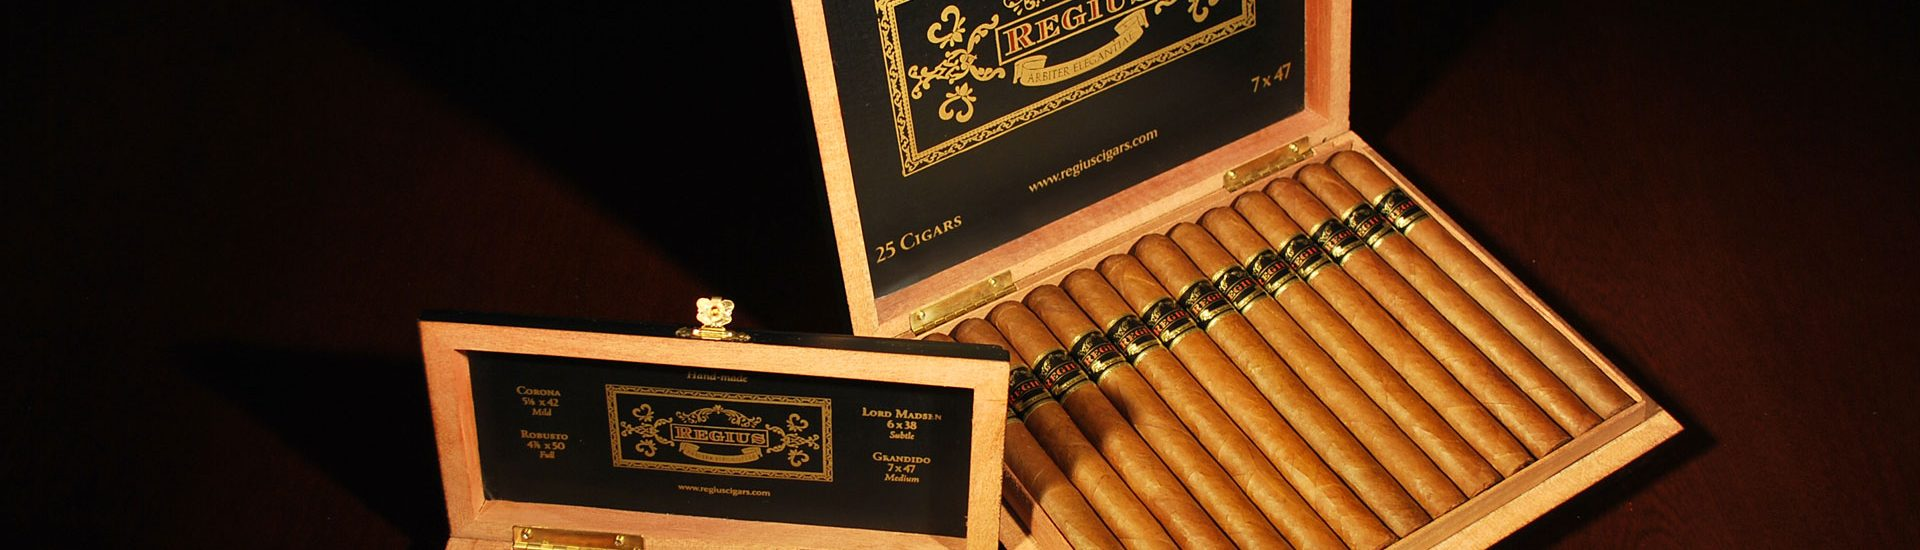 The World's Most Expensive Cigars